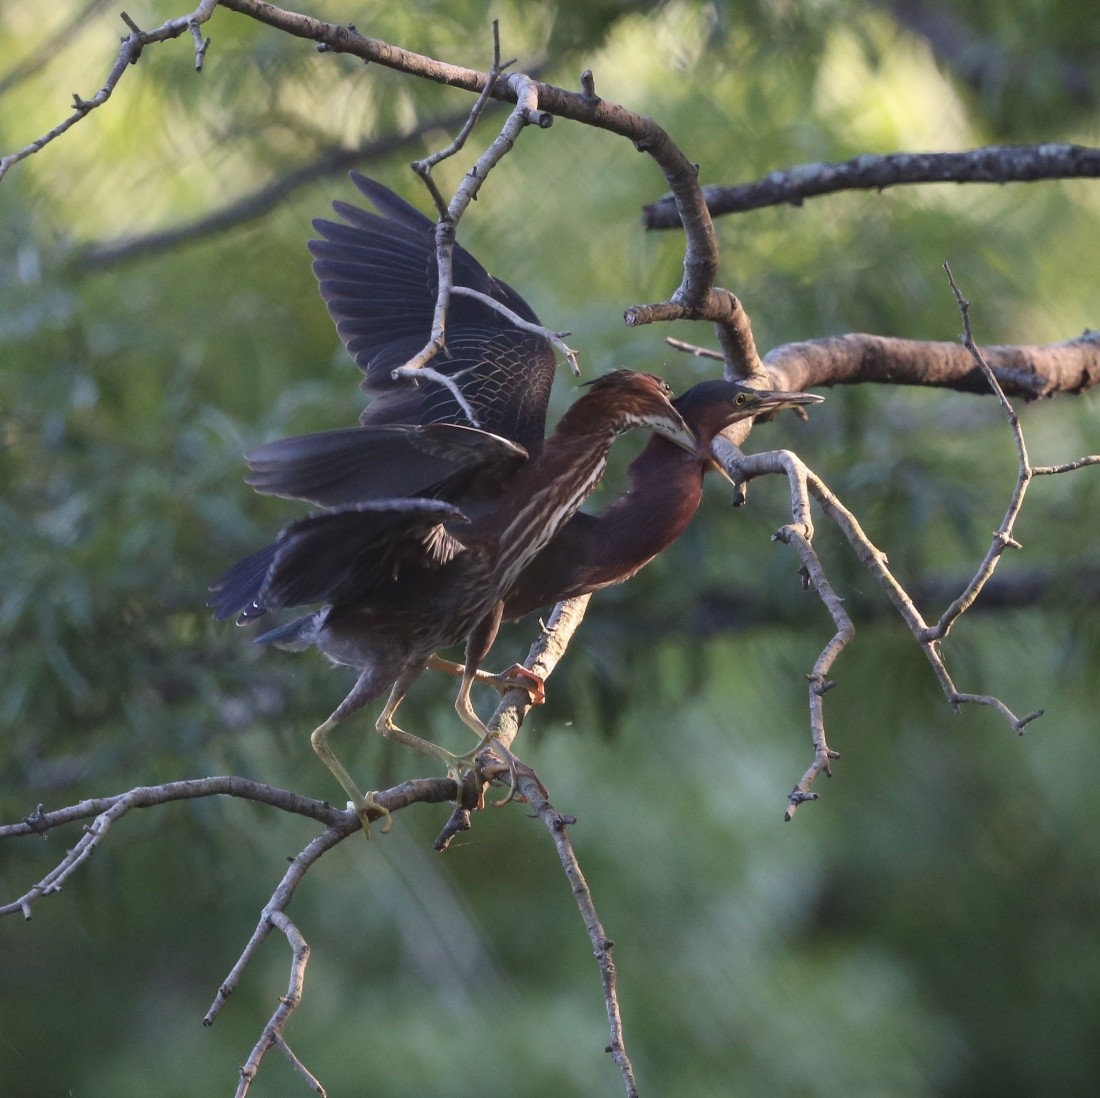 Juvenile and adult Green Heron on a branch